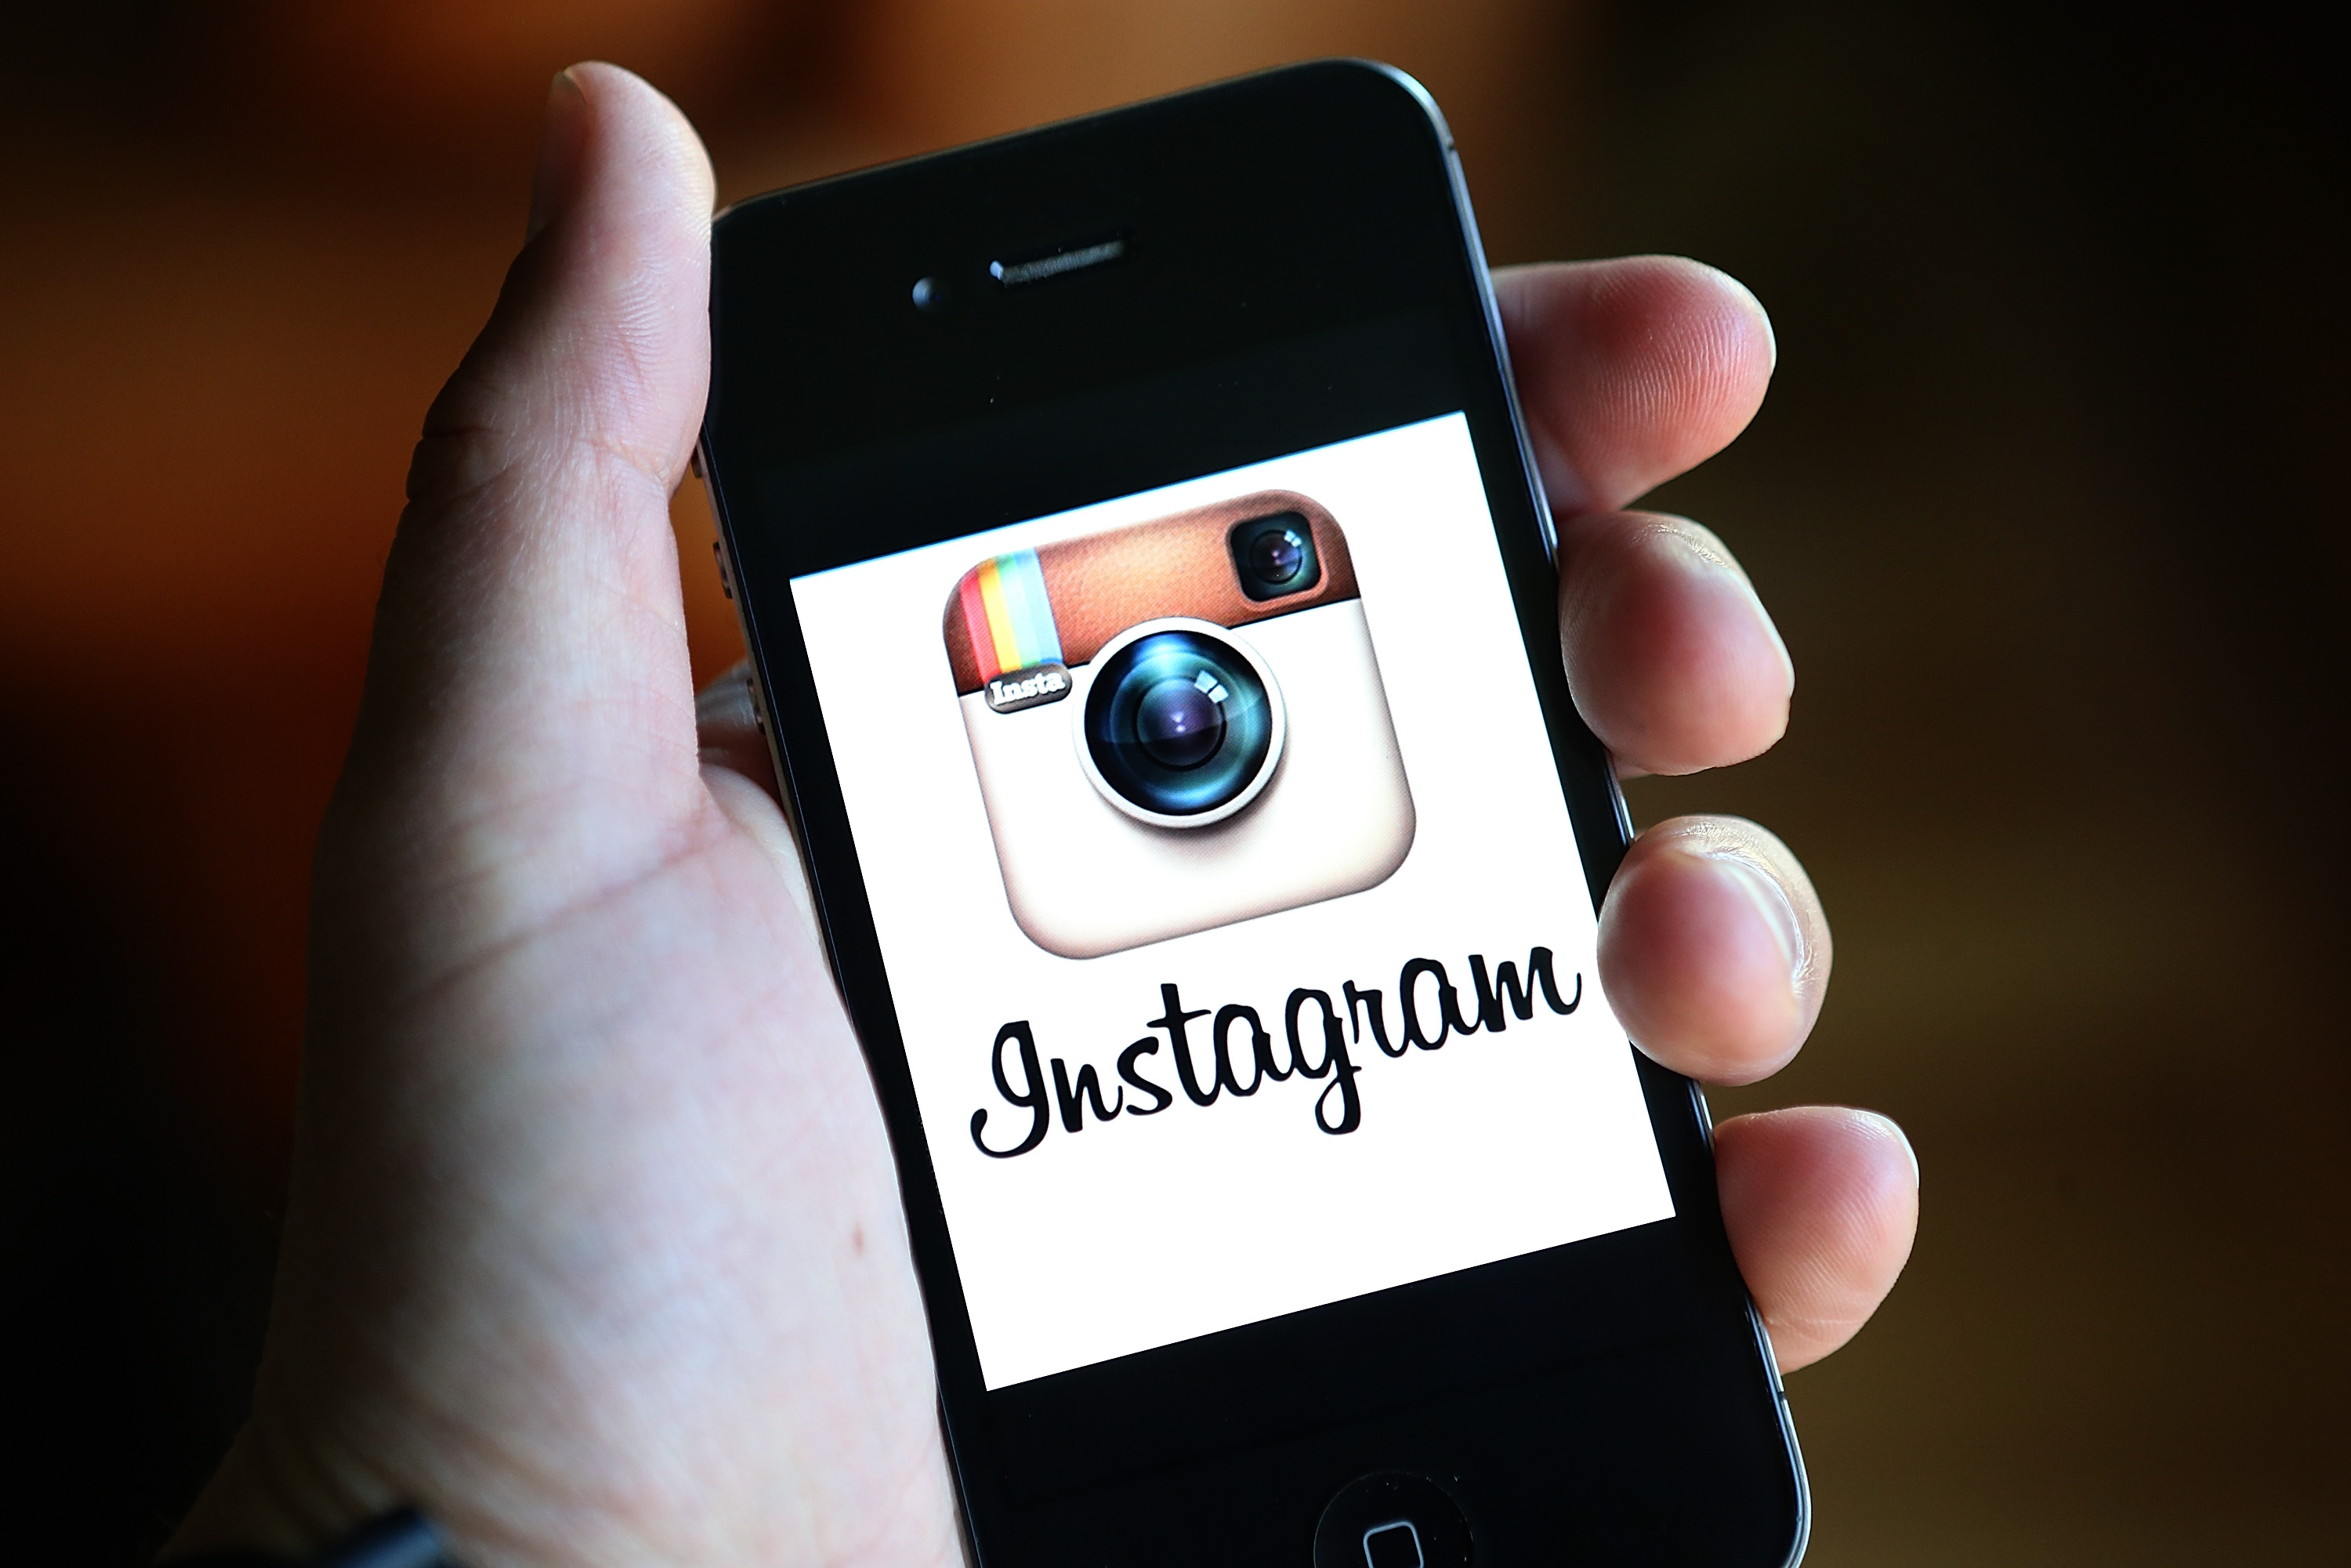 Instagram Changes Terms Of Service, Stirs Anger Among Users